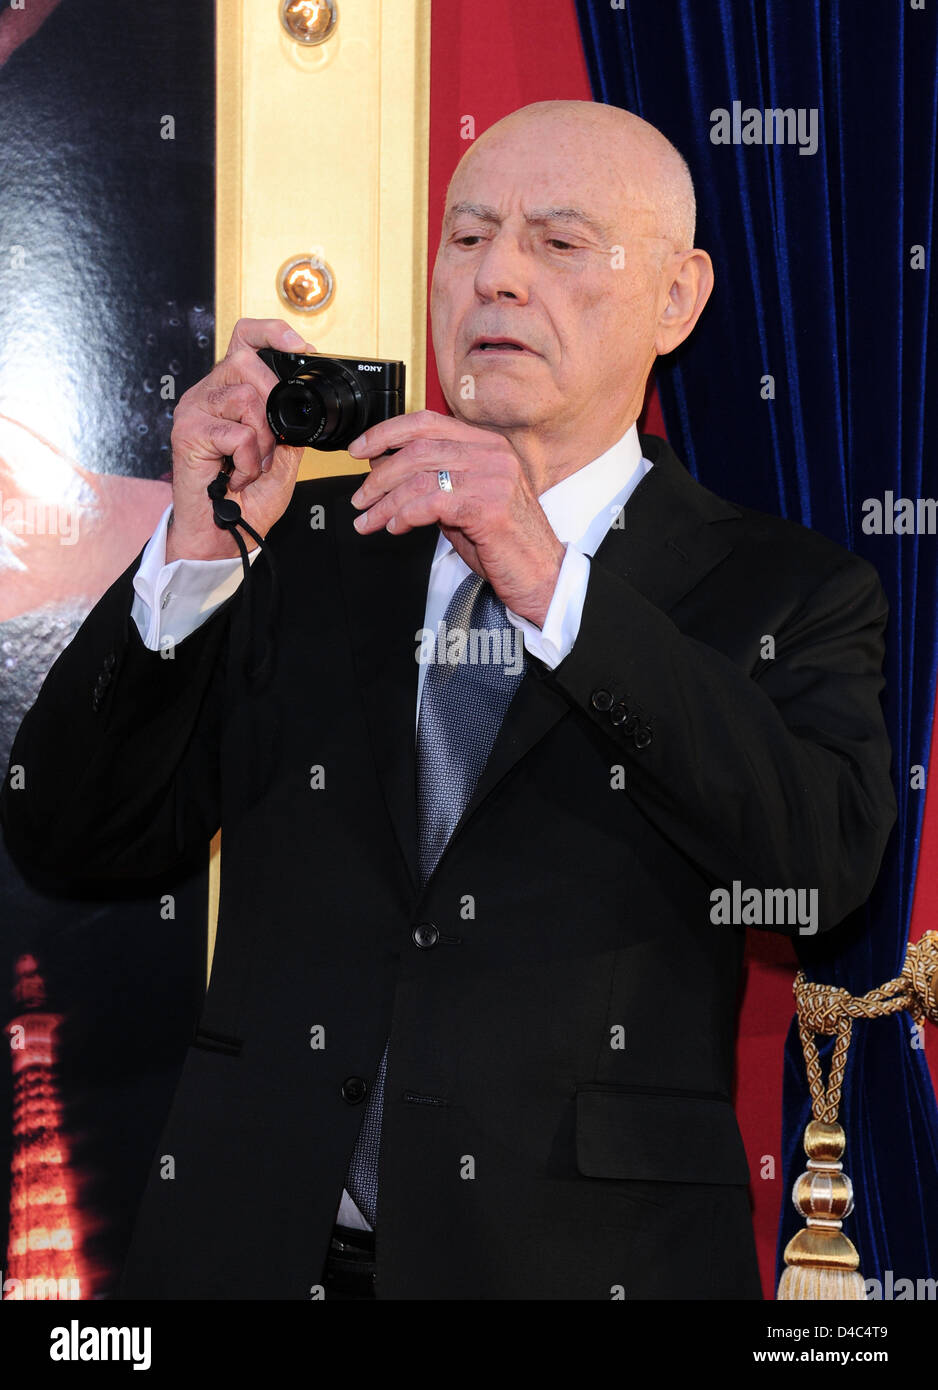 Los Angeles, USA. 11th March 2013. Alan Arkin arrives at the film premiere for The Incredible Burt Wonderstone at - Stock Image